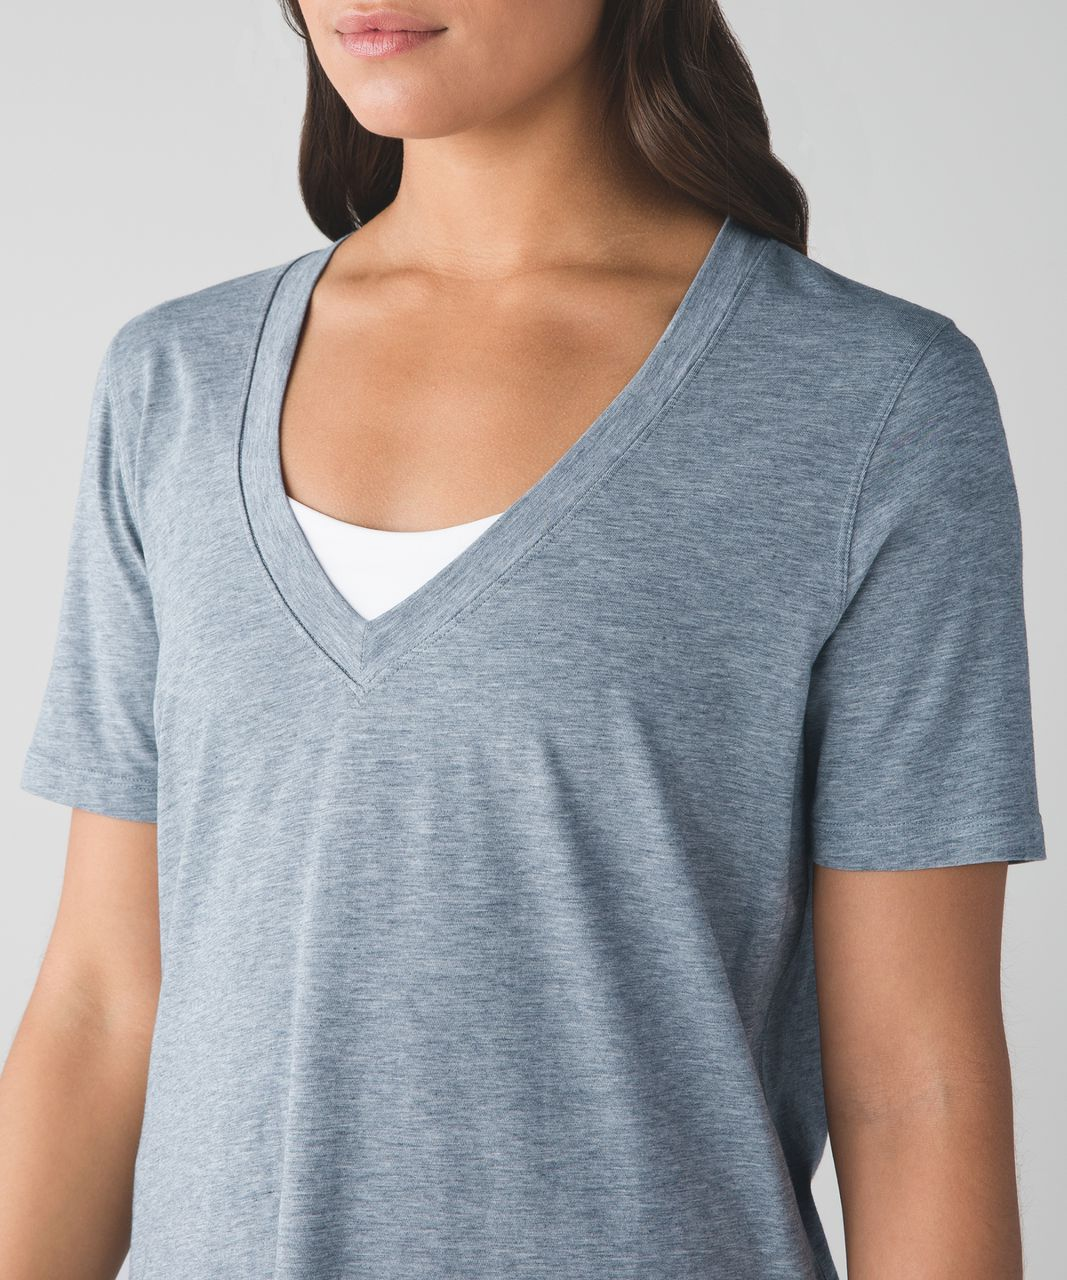 Lululemon Love Tee III - Heathered Medium Grey